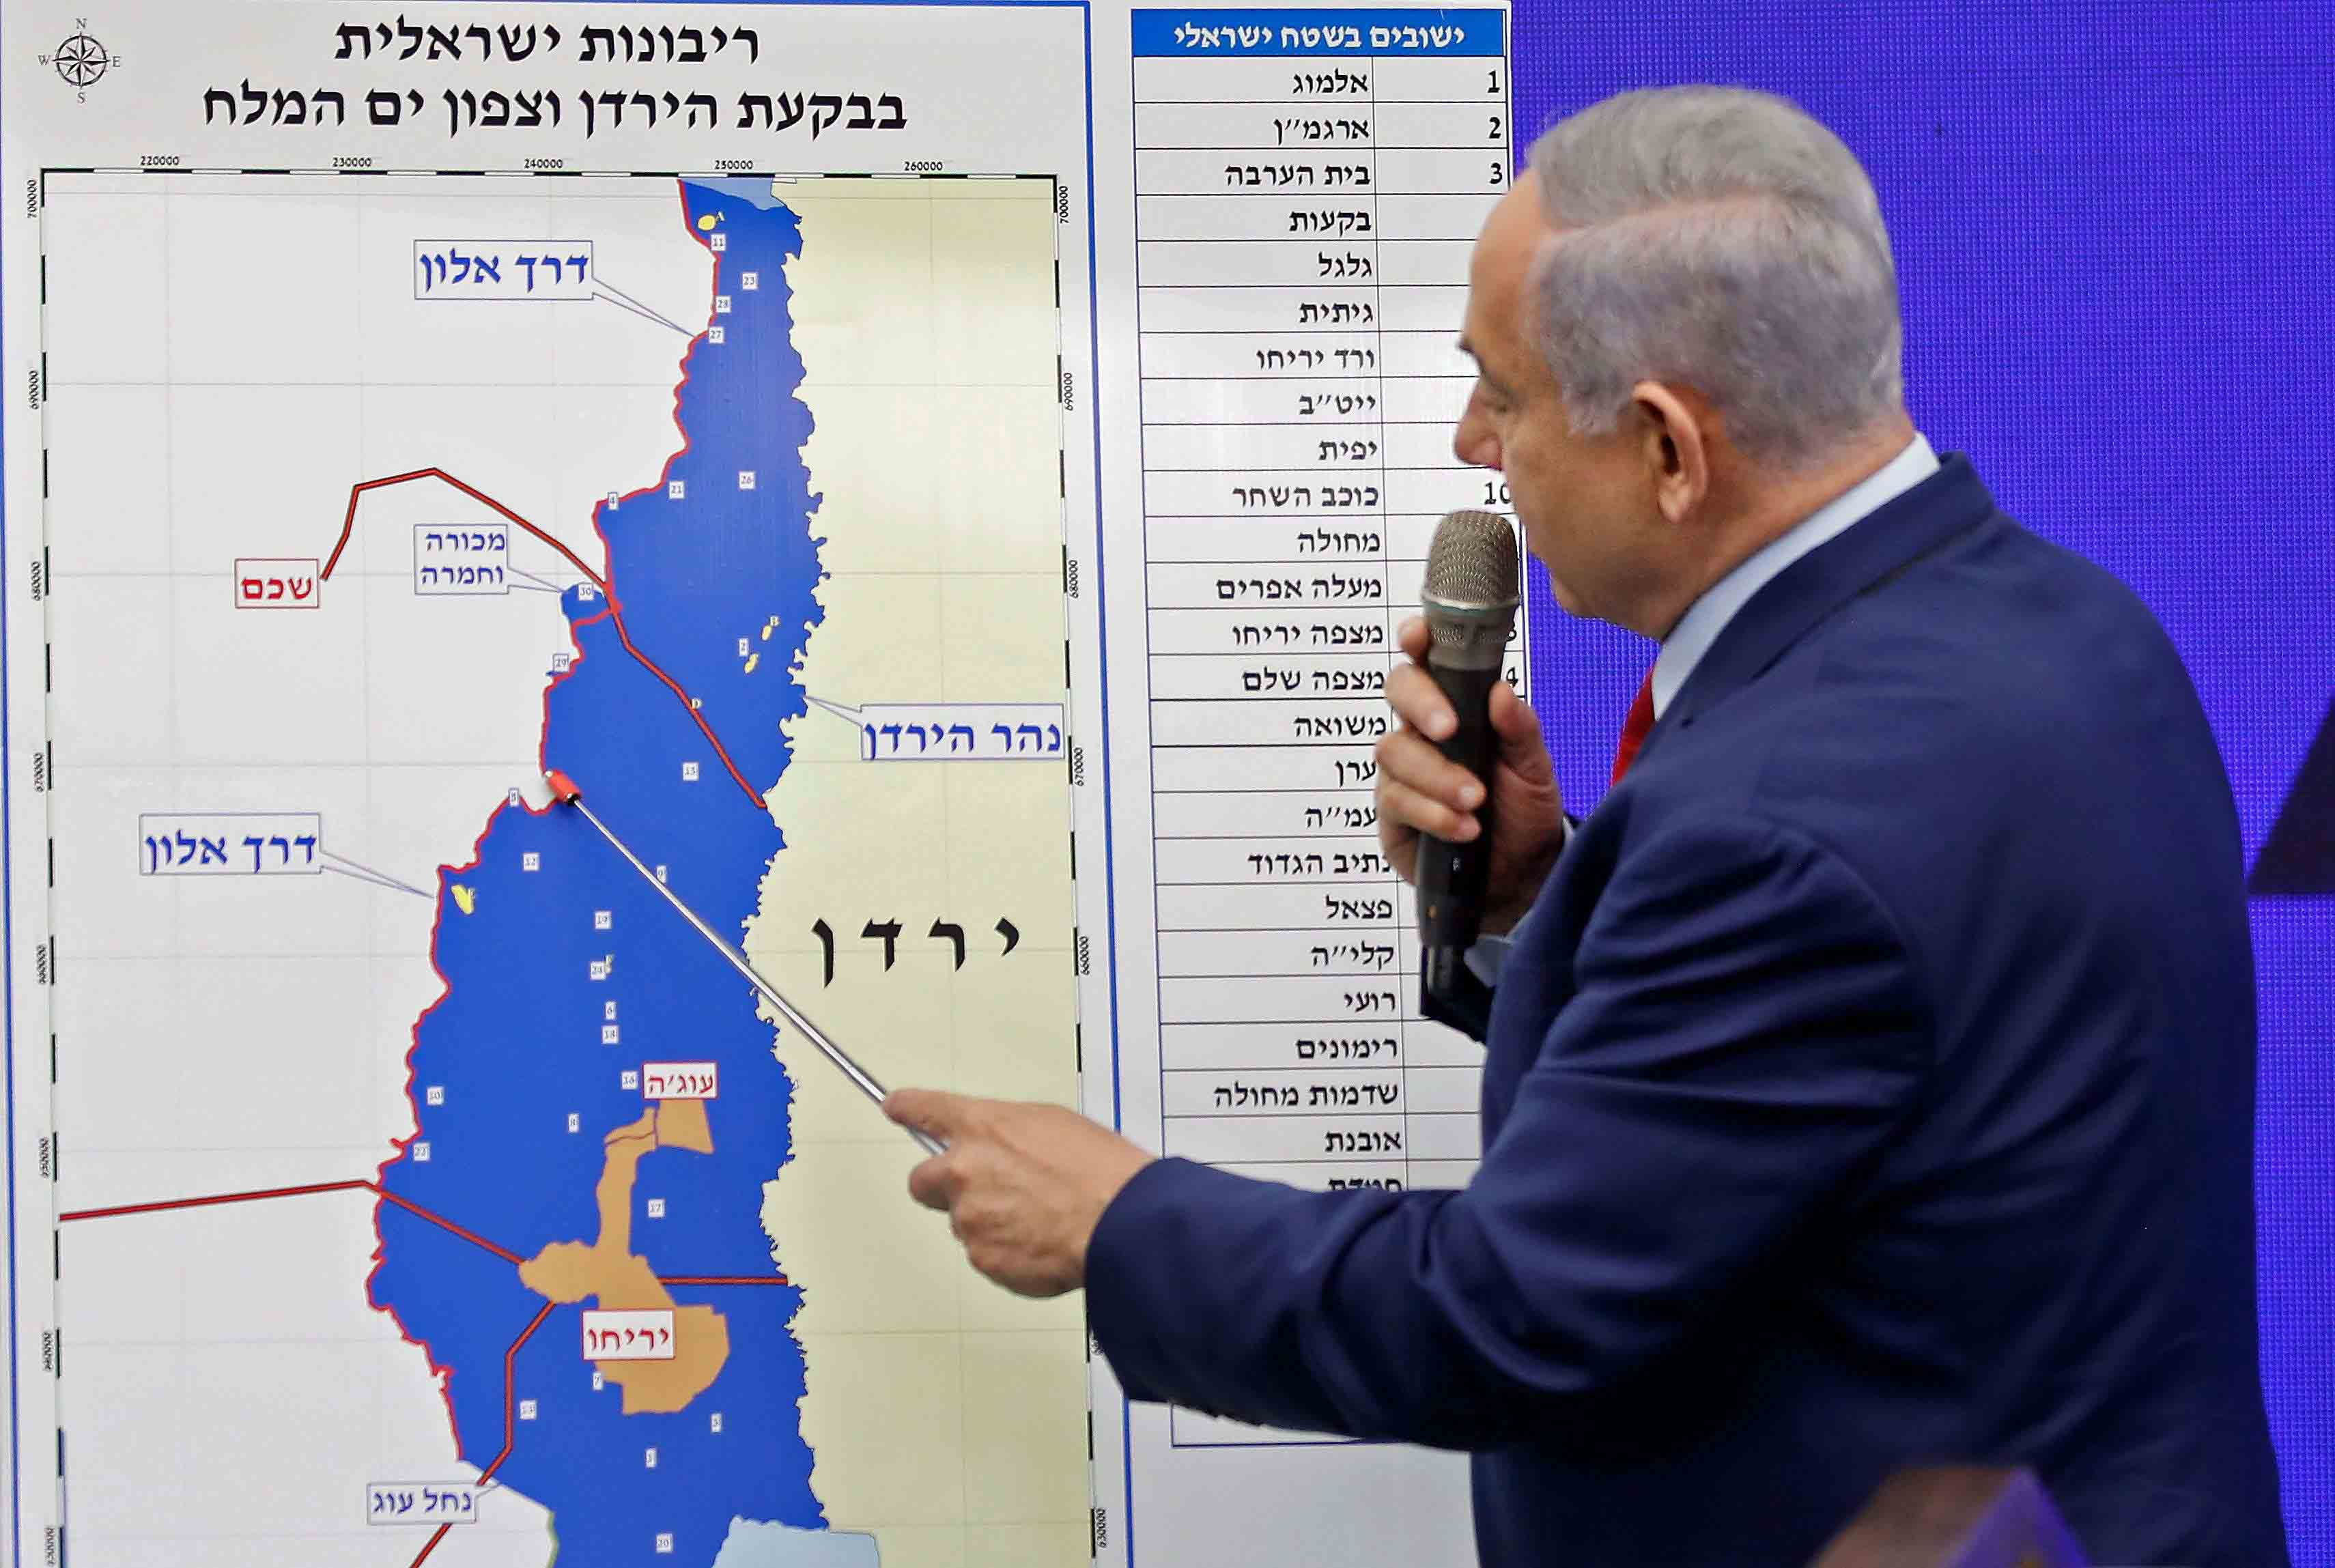 Israeli Prime Minister Binyamin Netanyahu points at a map of the Jordan Valley as he gives a statement in Ramat Gan, near the Israeli coastal city of Tel Aviv, September 10. (AFP)